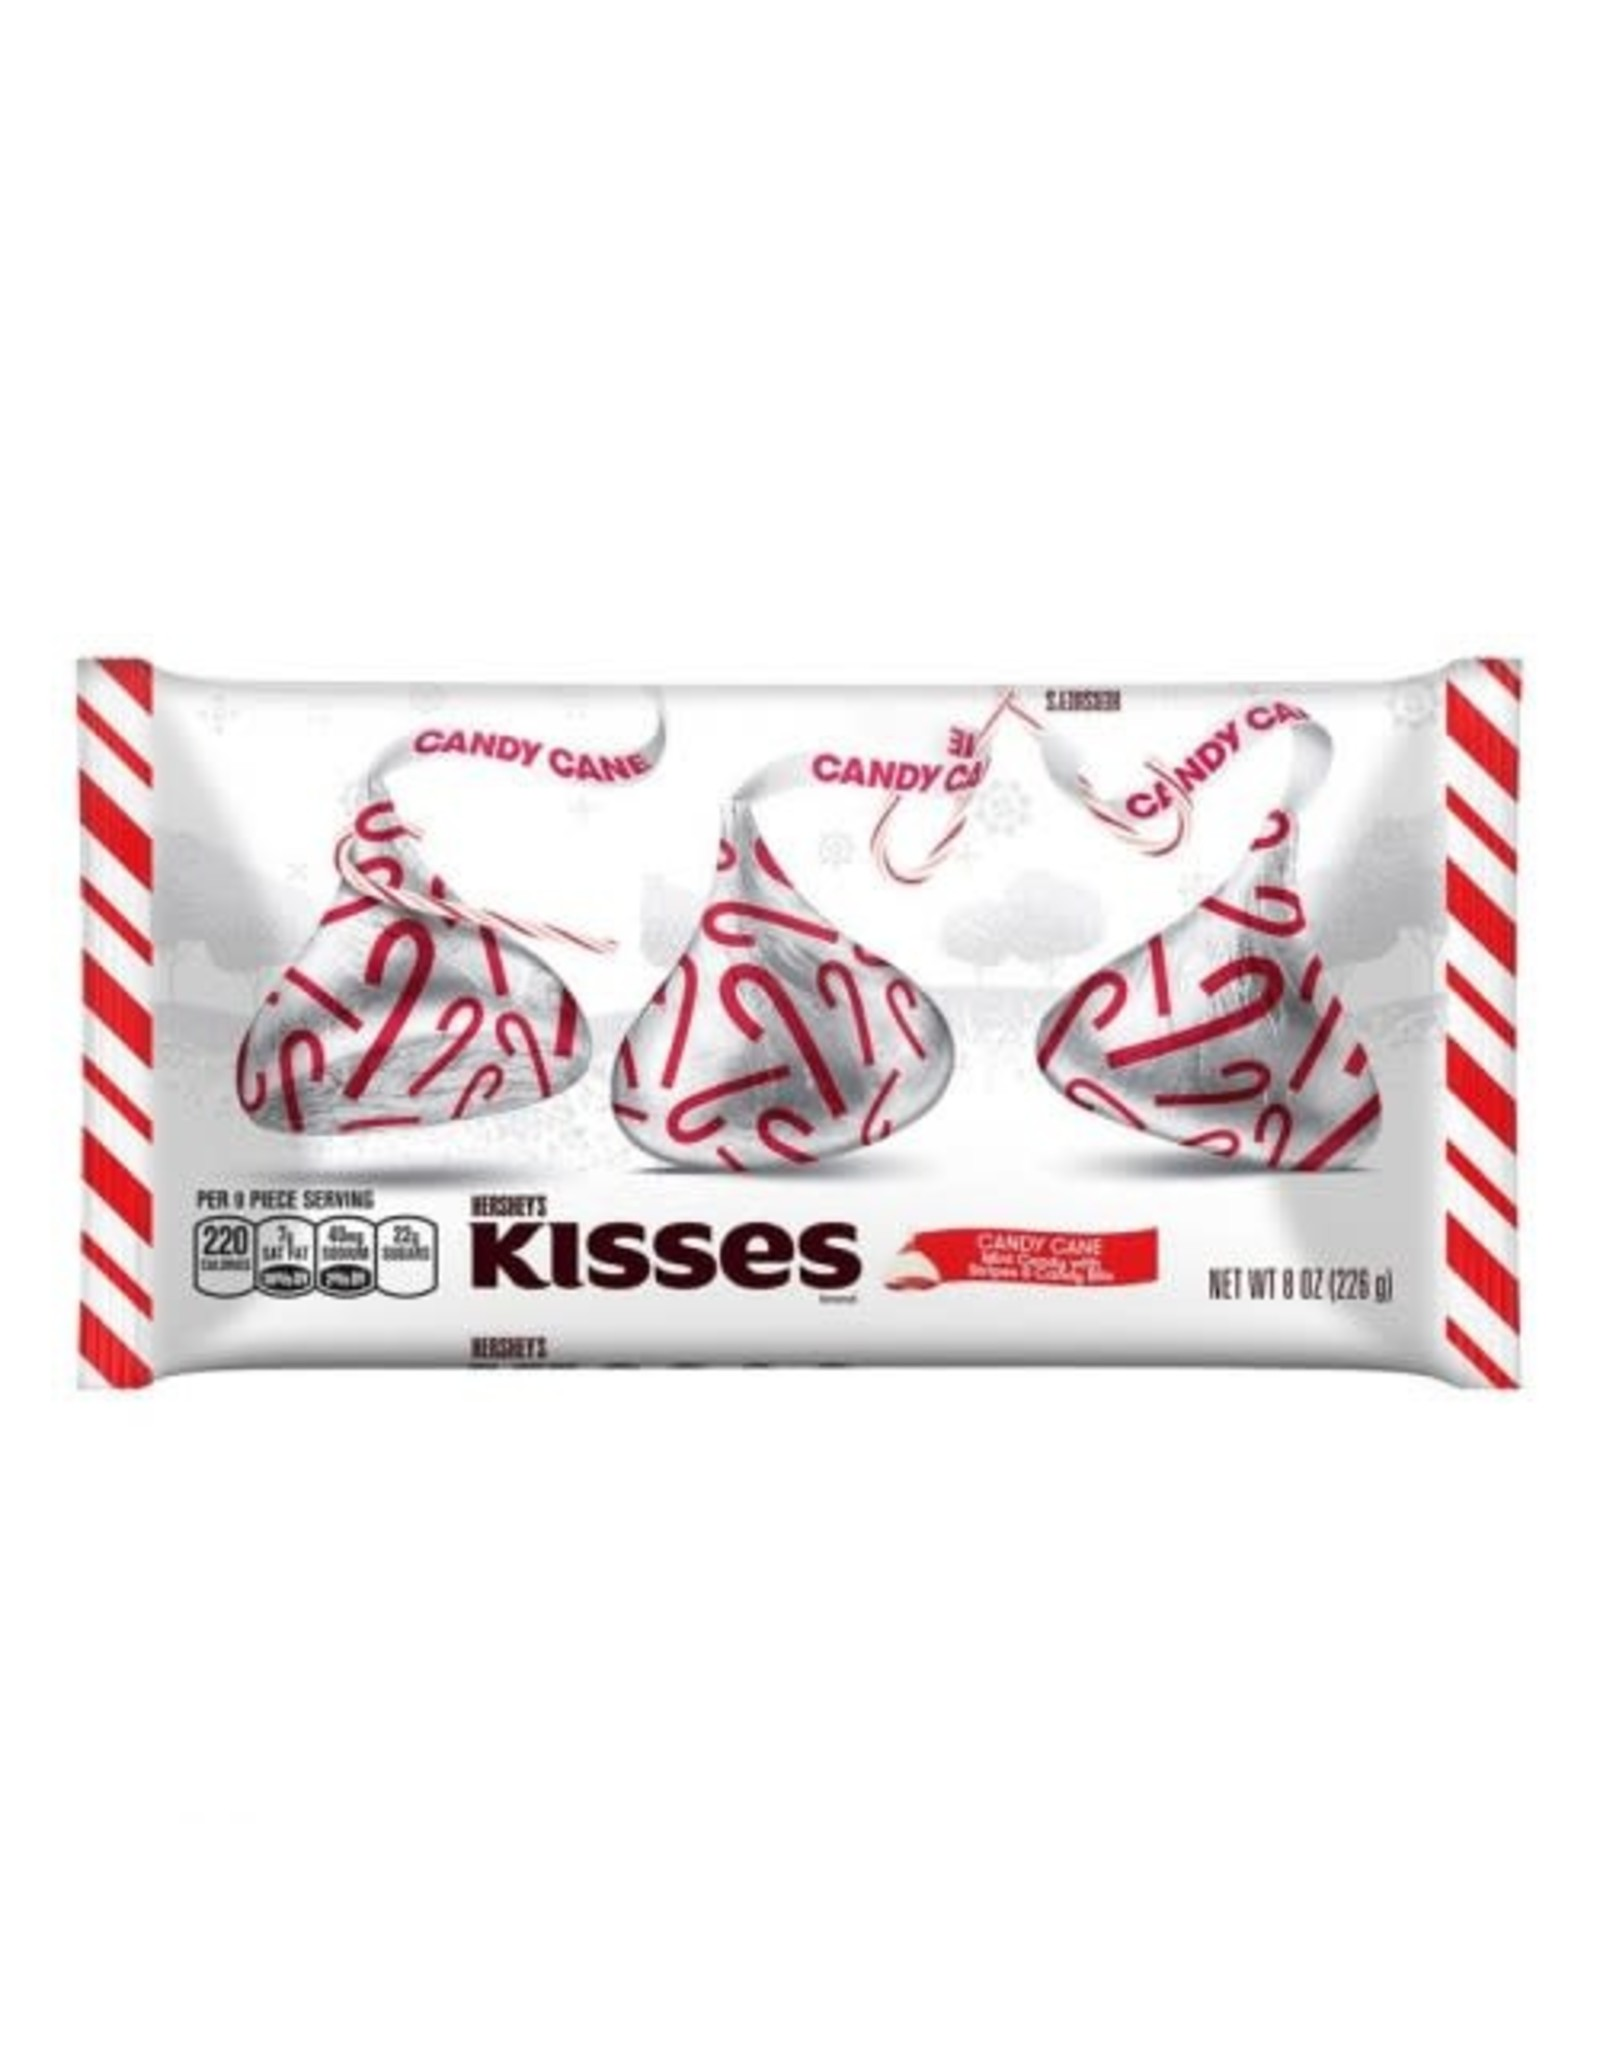 Hershey's Candy Cane Kisses - 226g